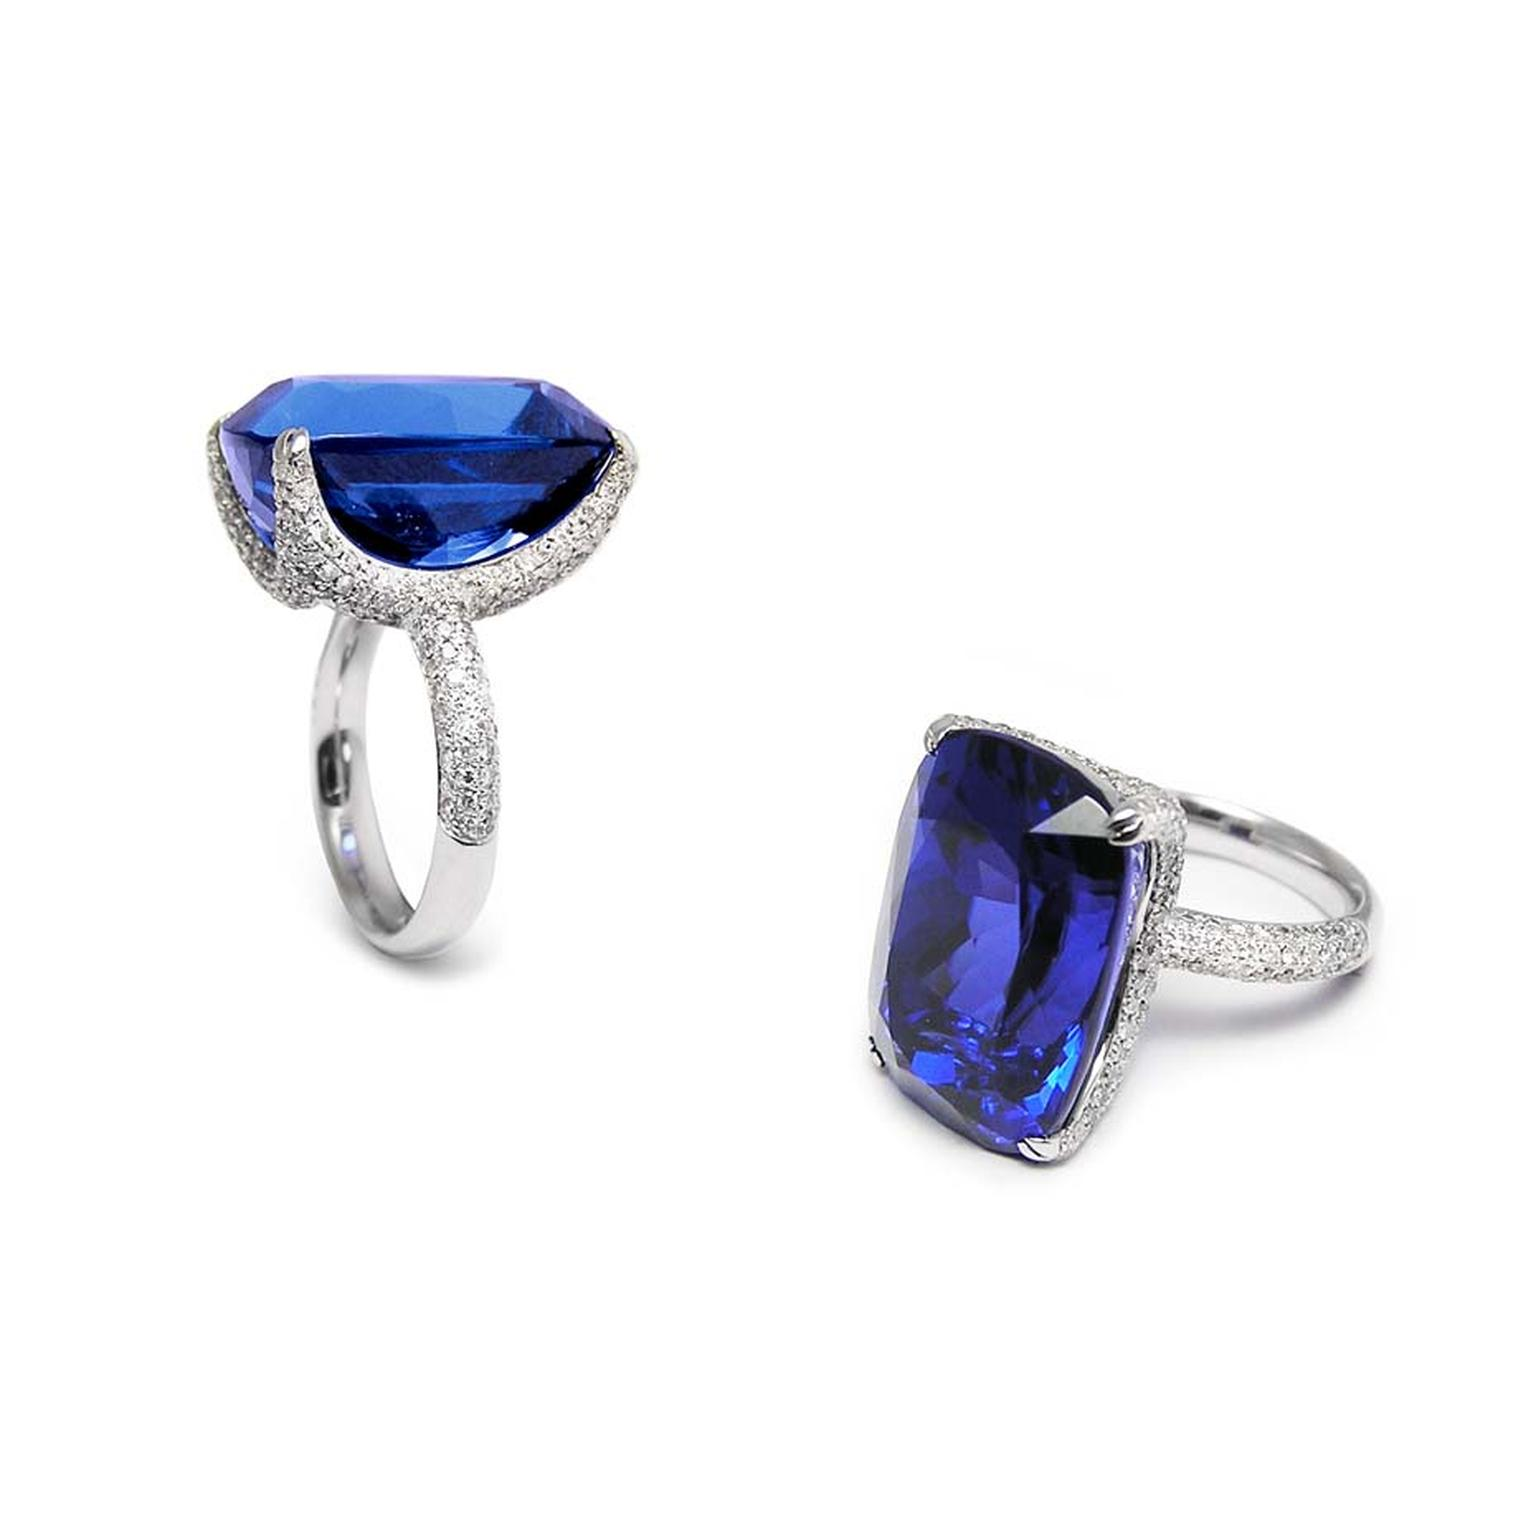 Tanzanite Engagement Rings A Bold And Fashionable